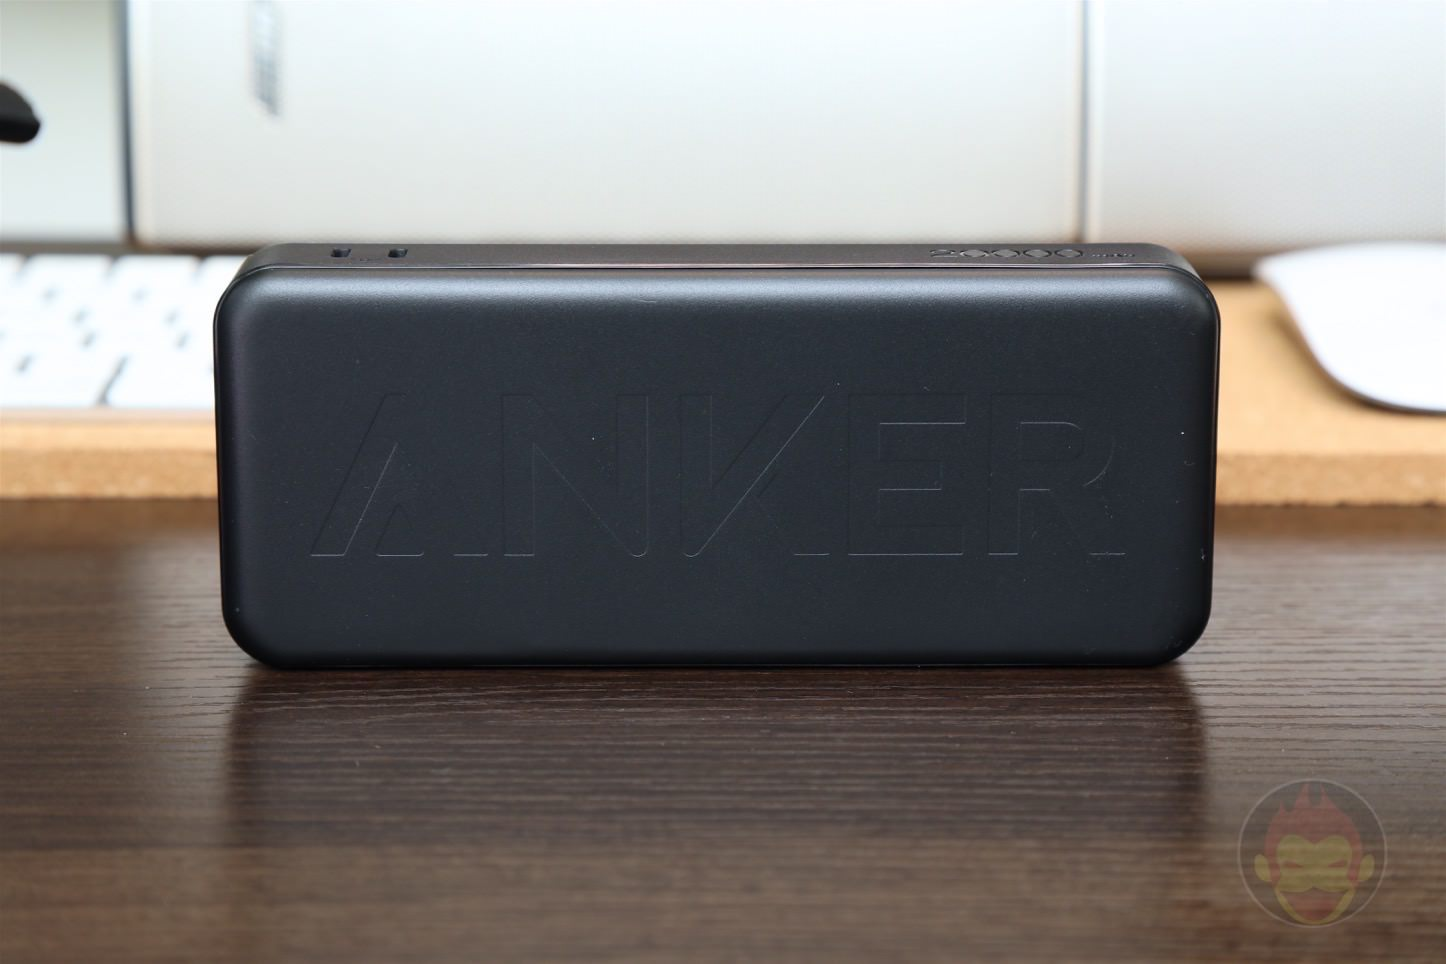 Anker-PowerCore-II-20000-Review-07.jpg